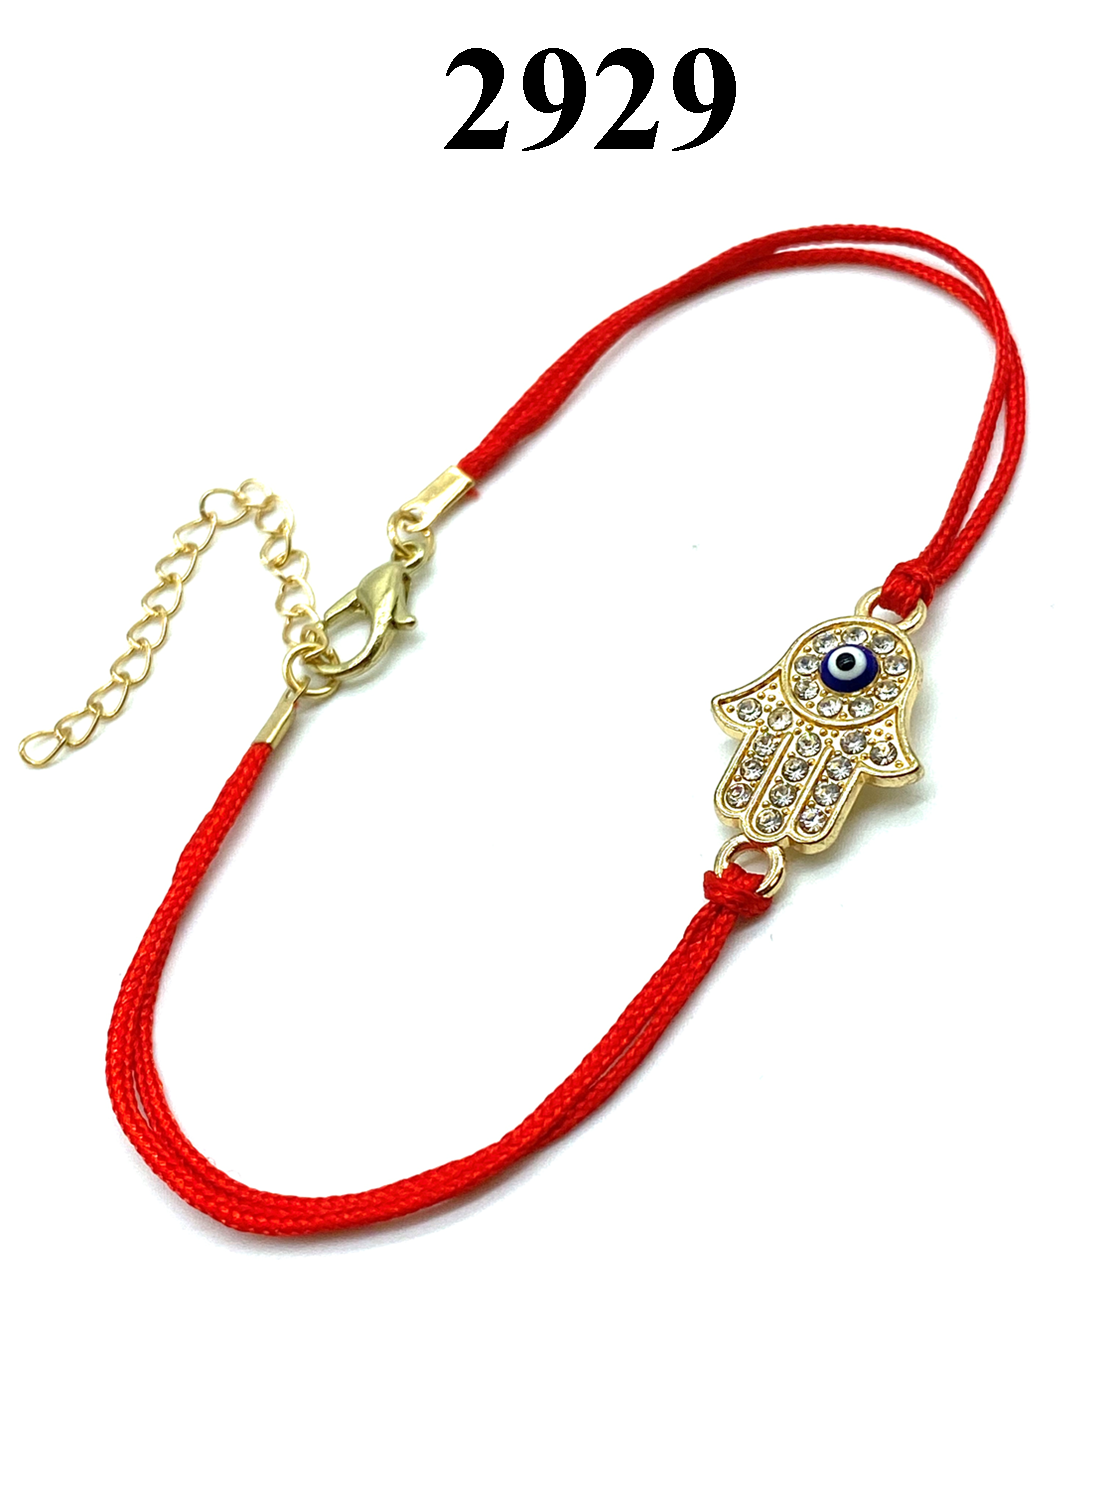 Evil Eye Crystal Hamsa Red Bracelet with Chain #2929